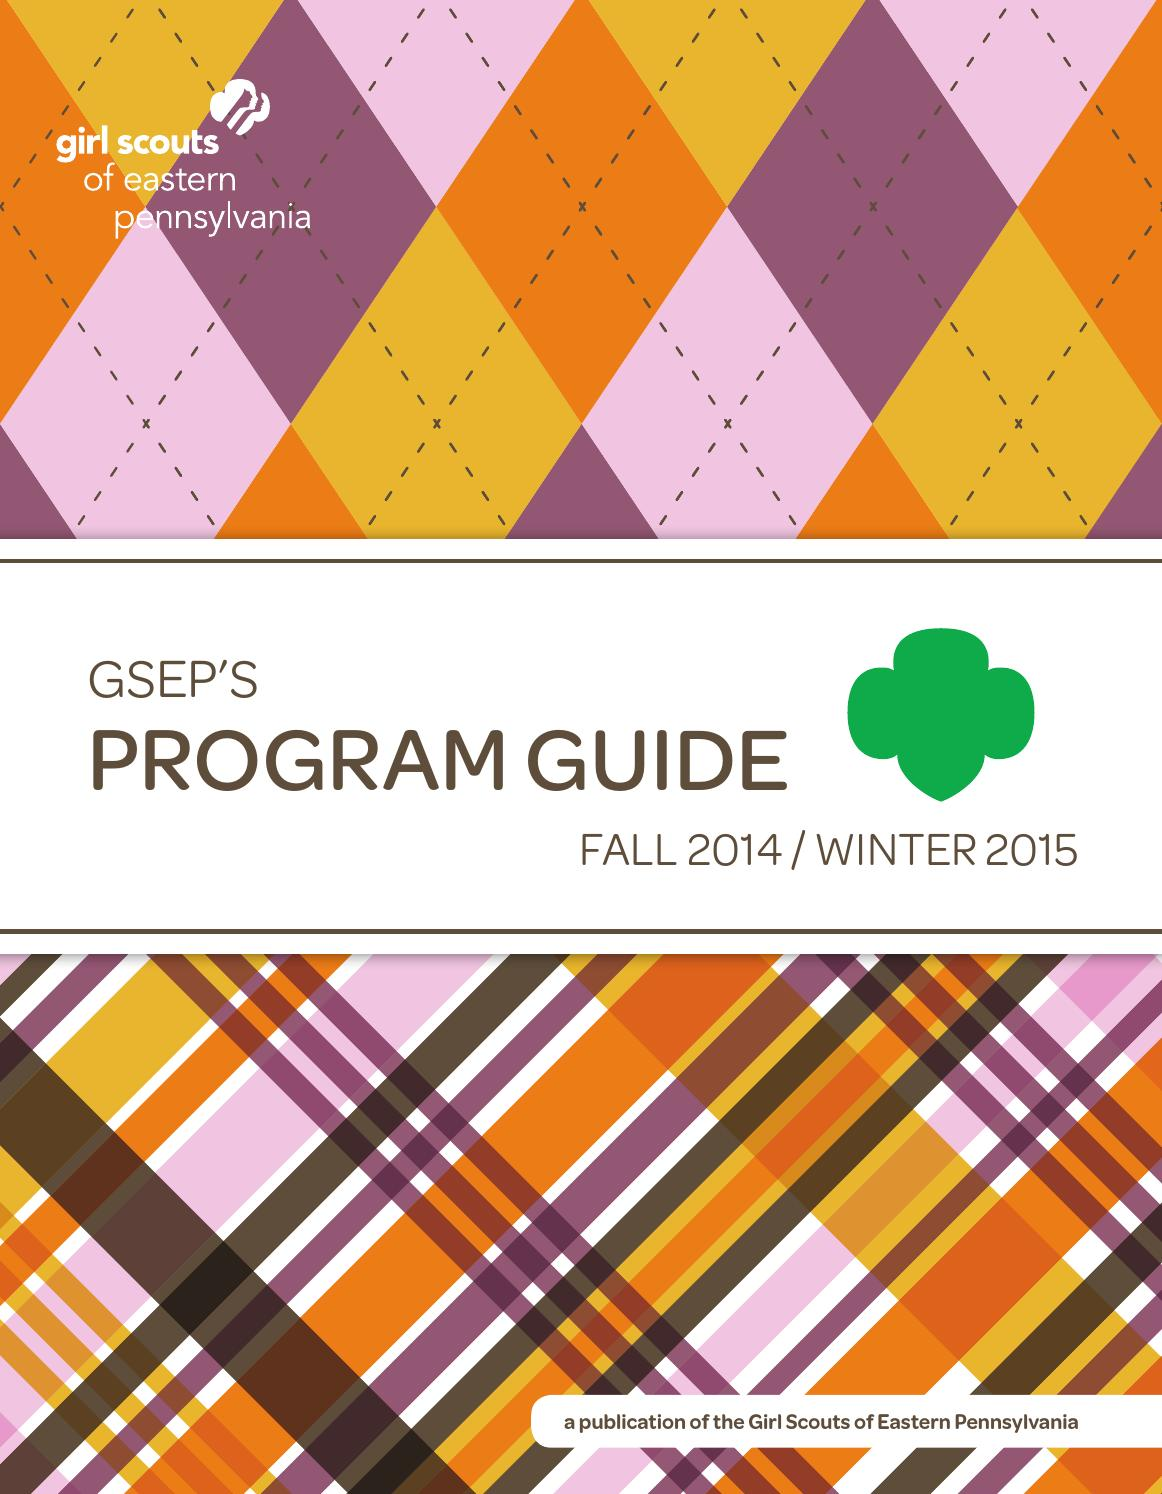 Program Guide Fall 2014/Winter 2015 by Girl Scouts of Eastern Pennsylvania - Issuu